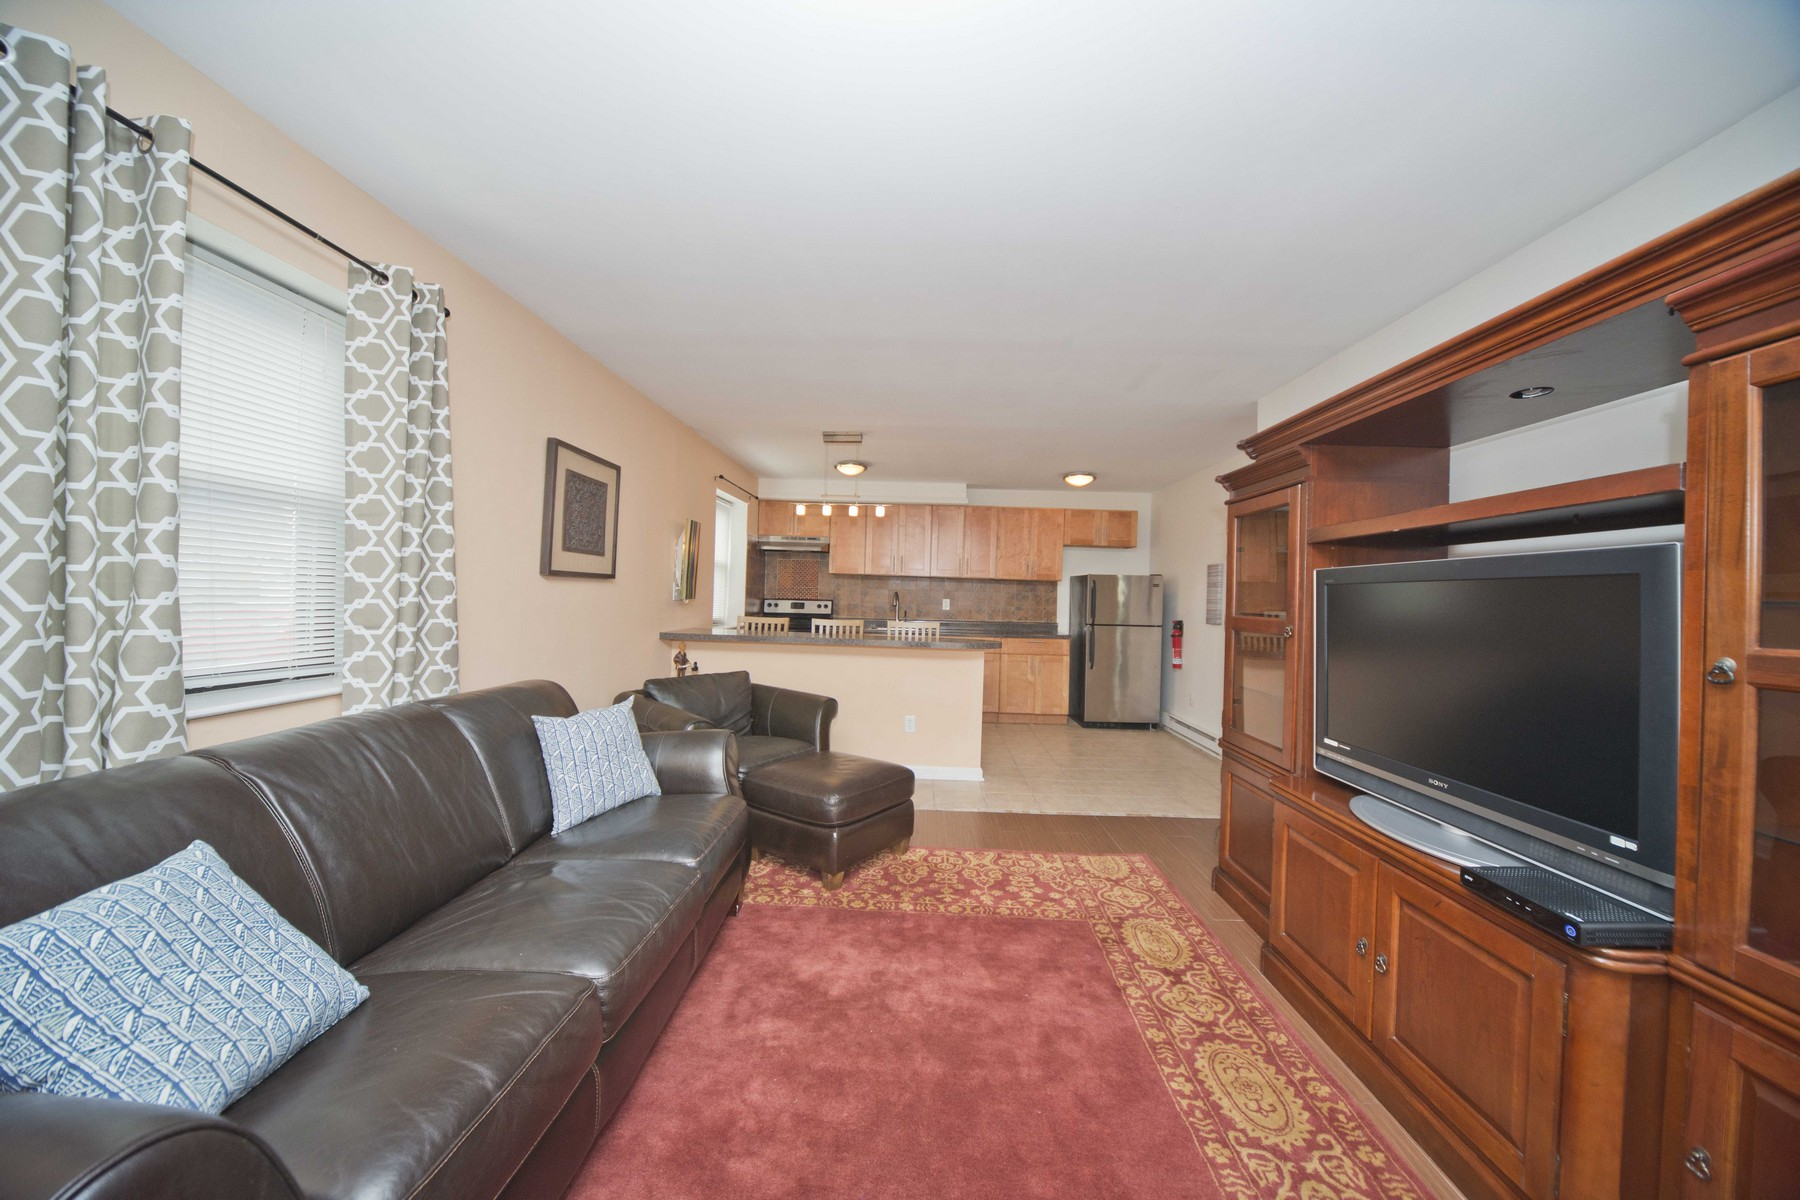 Single Family Home for Sale at Harbor Point 1492 Ocean Ave. #A5 Avon By The Sea, New Jersey, 07760 United States